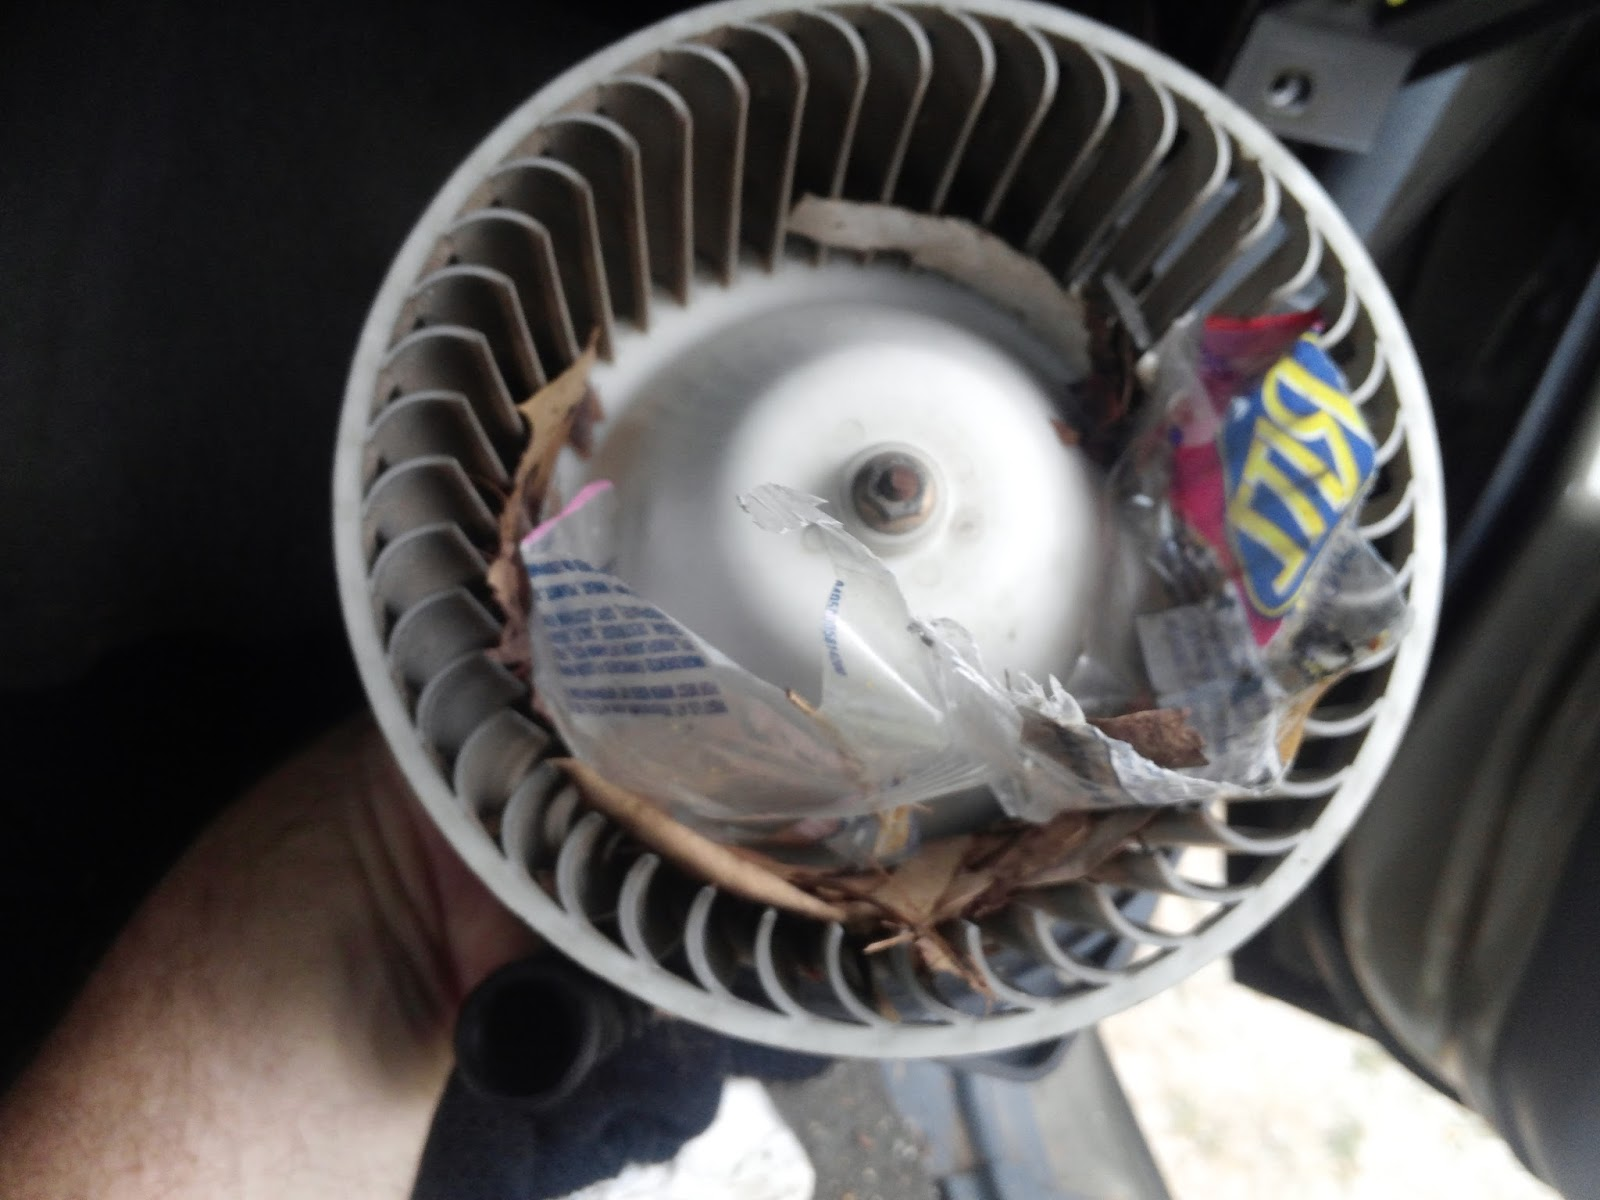 When We Removed The Blower Motor Here Is What We Found Inside The Fan Assembly I Would Say This Would Cause A Bit Of Noise